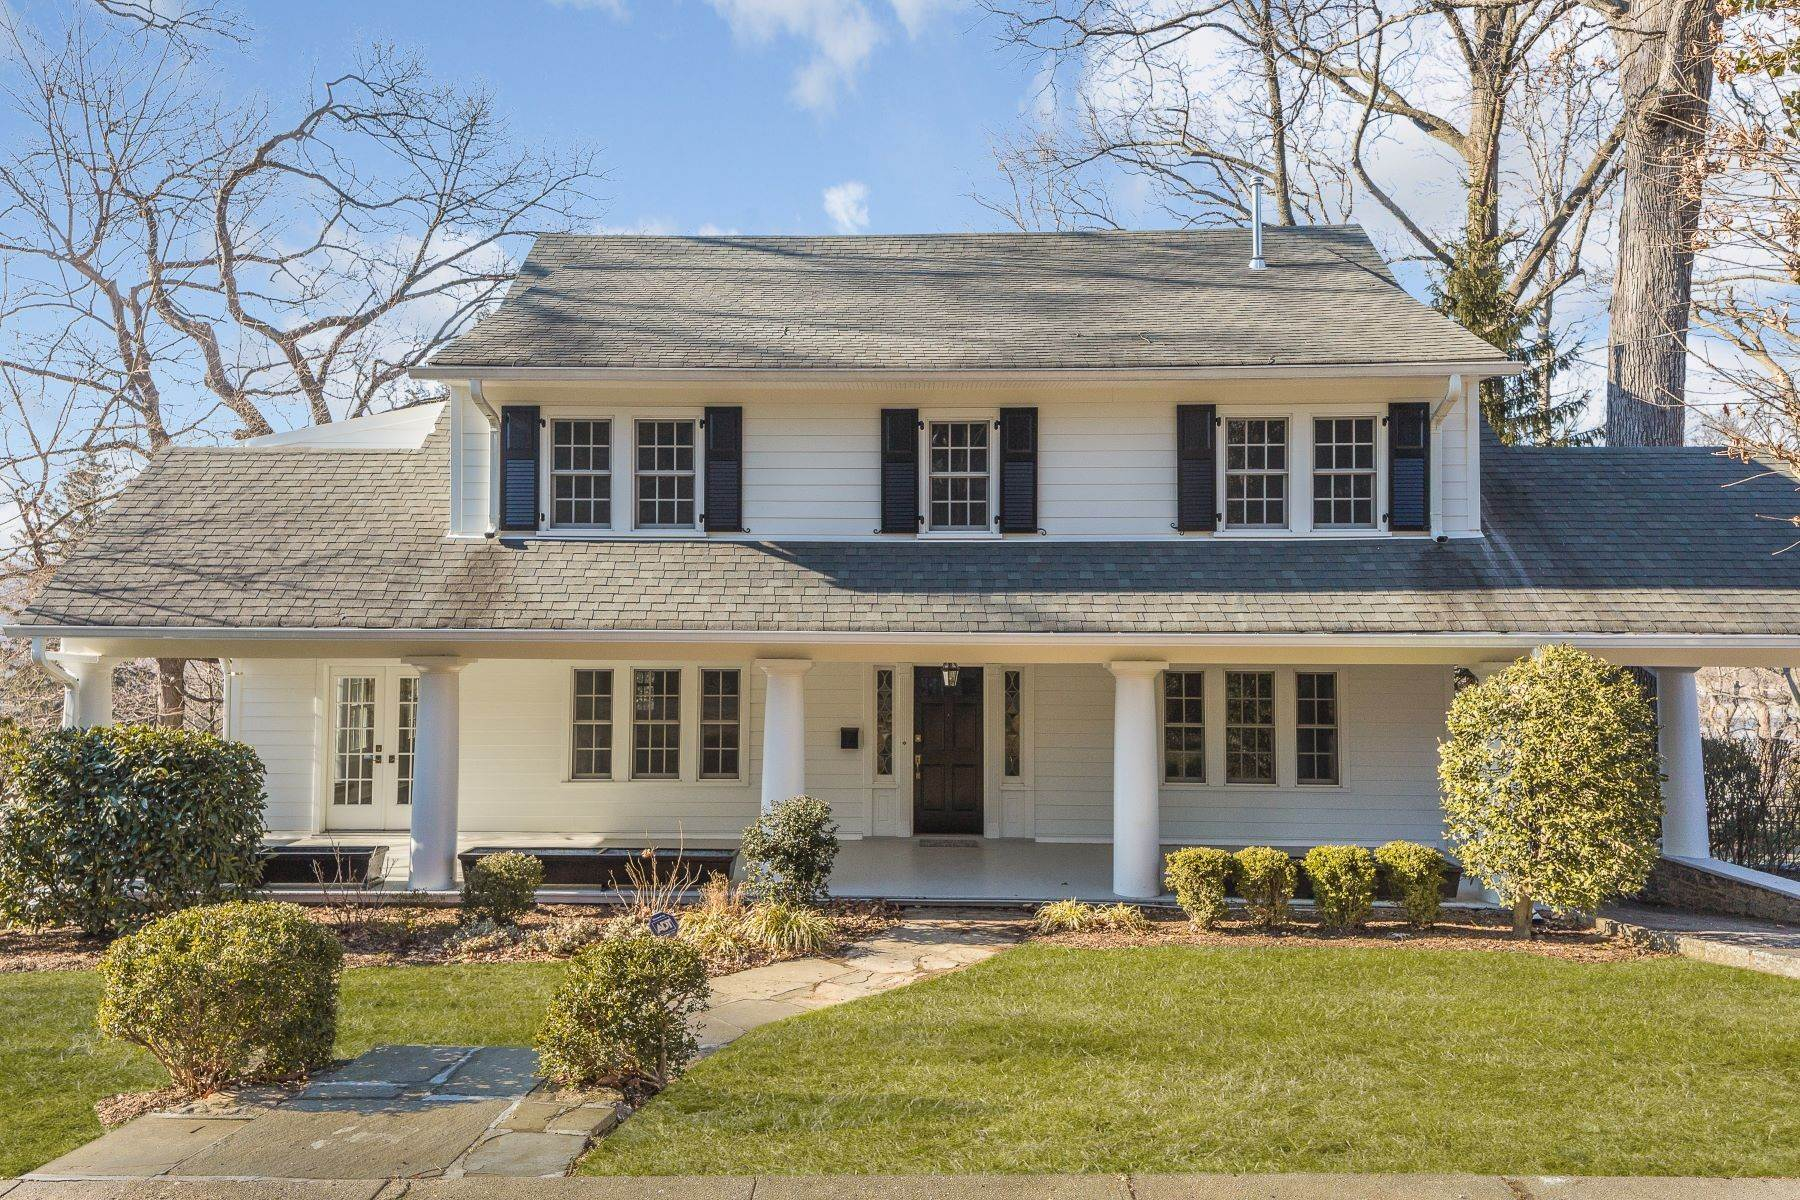 Single Family Homes for Sale at 129 Dellwood Road Bronxville, New York 10708 United States